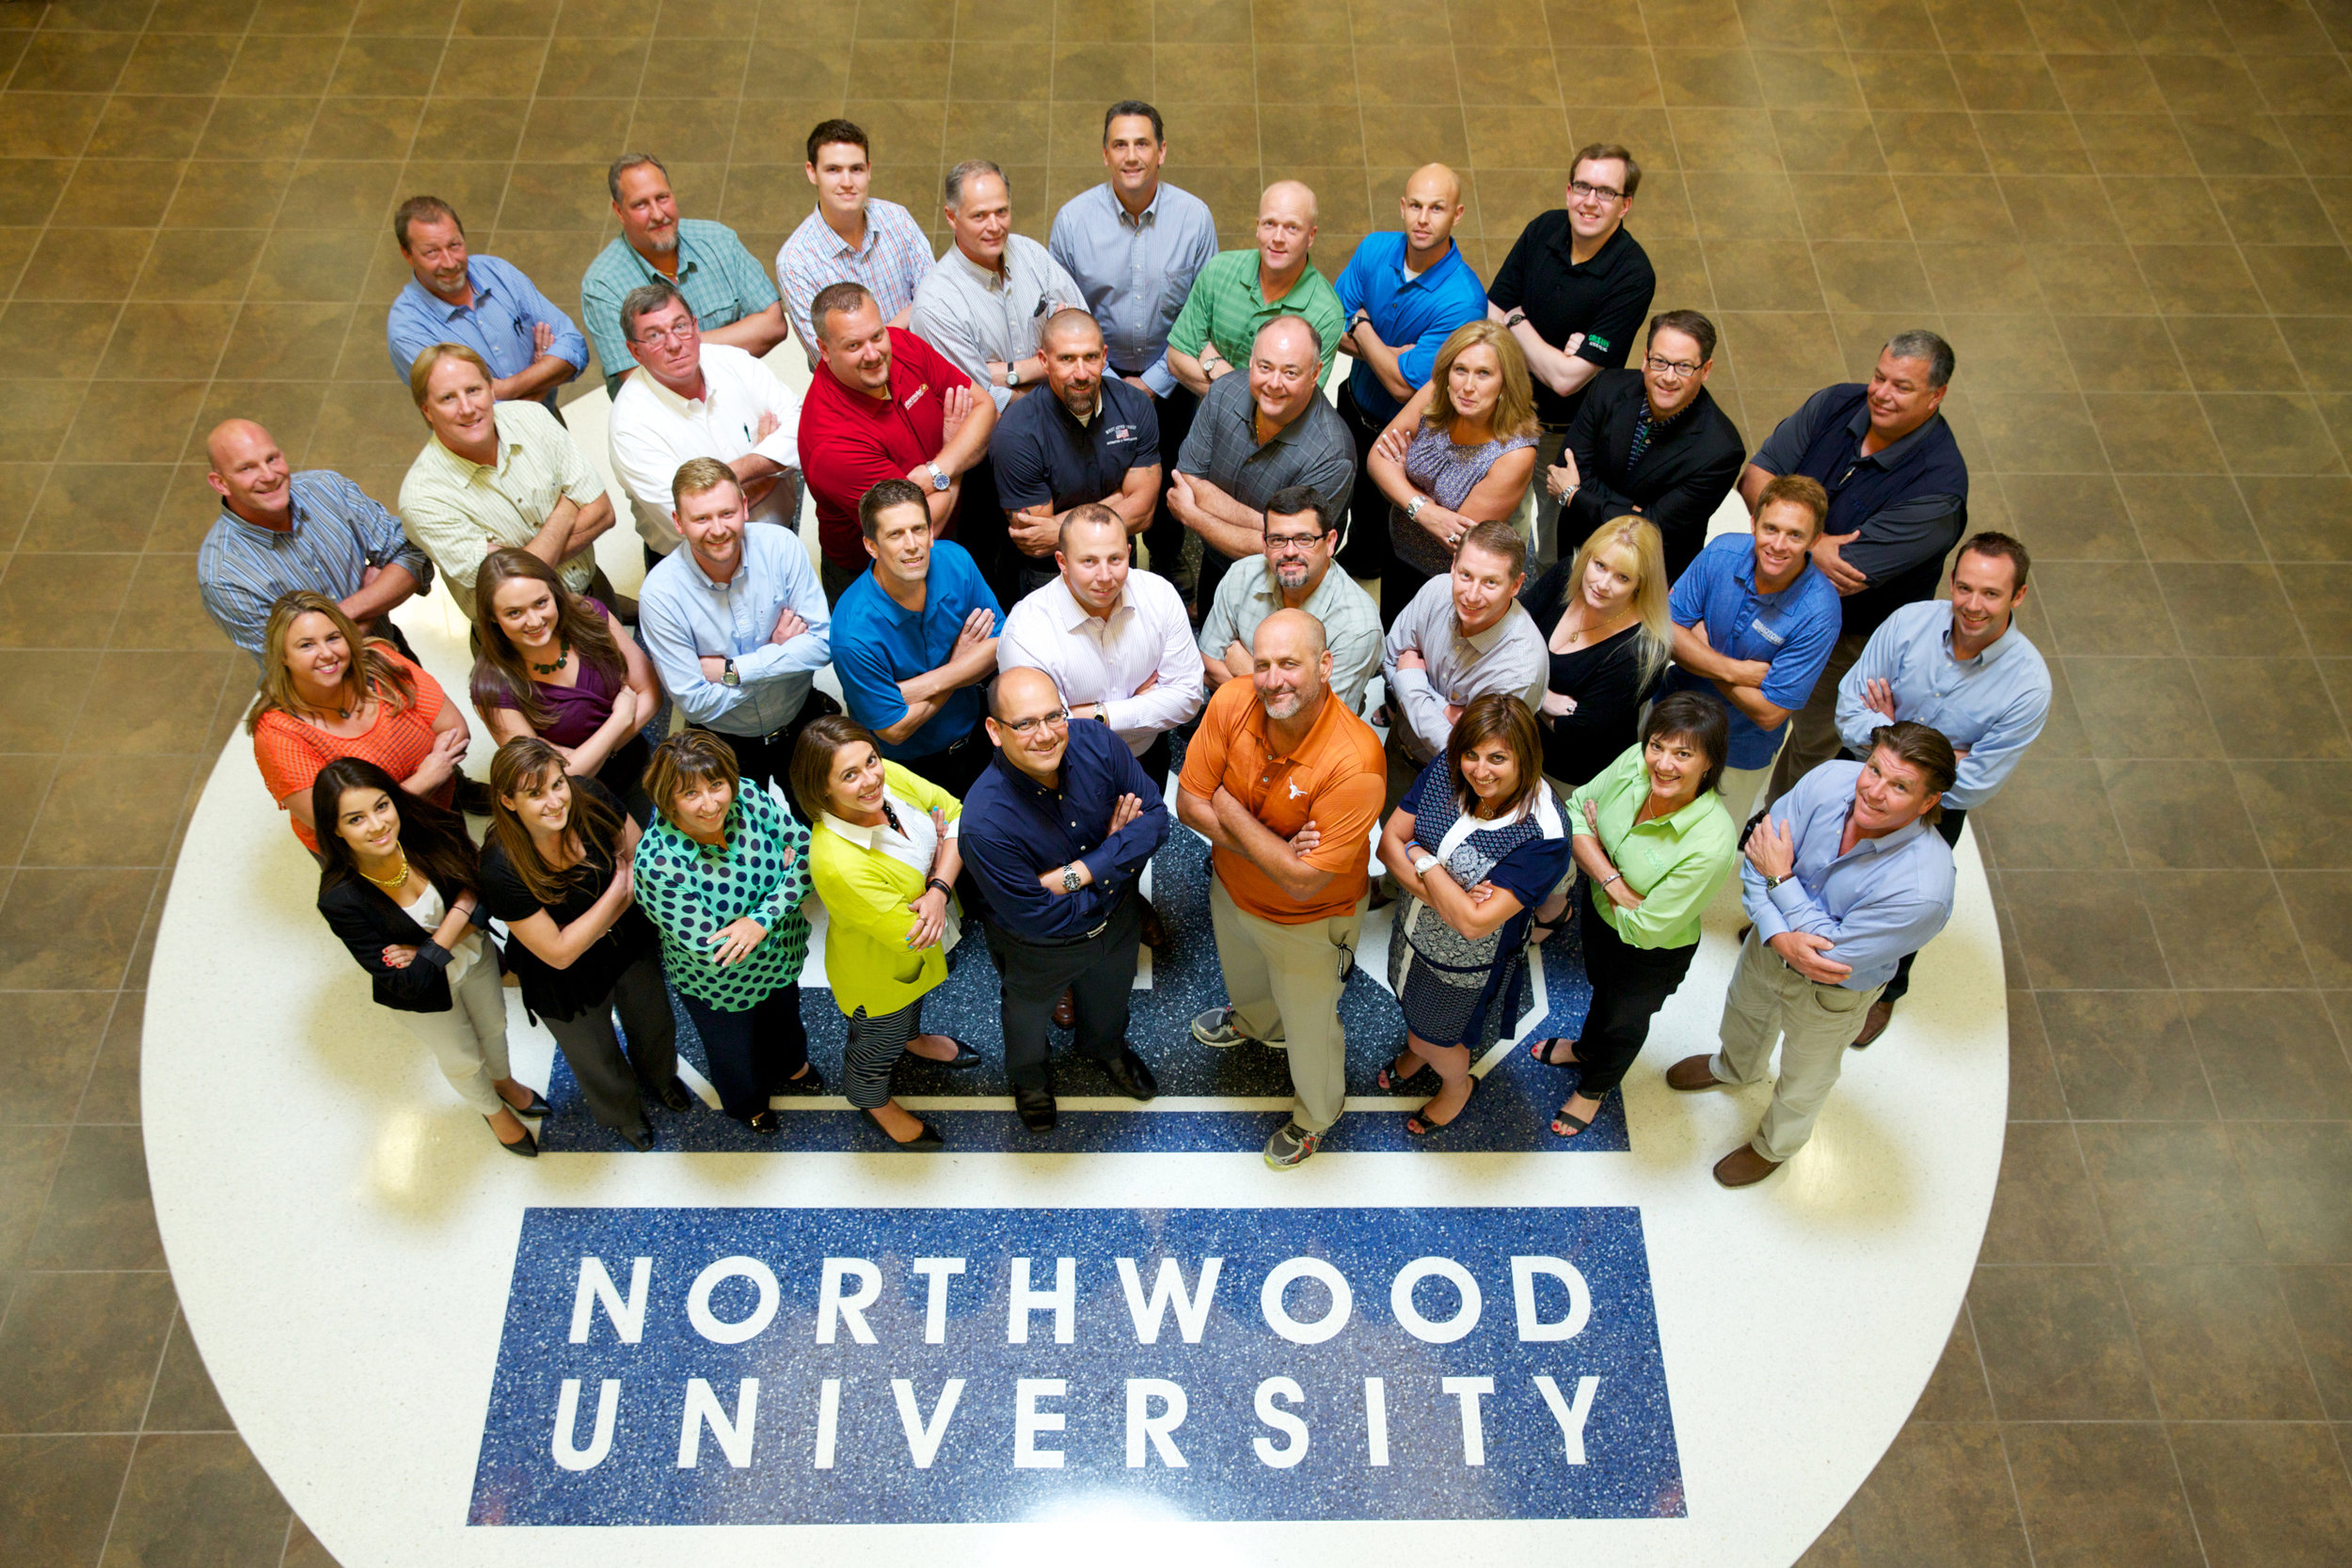 Northwood University Leadership 2